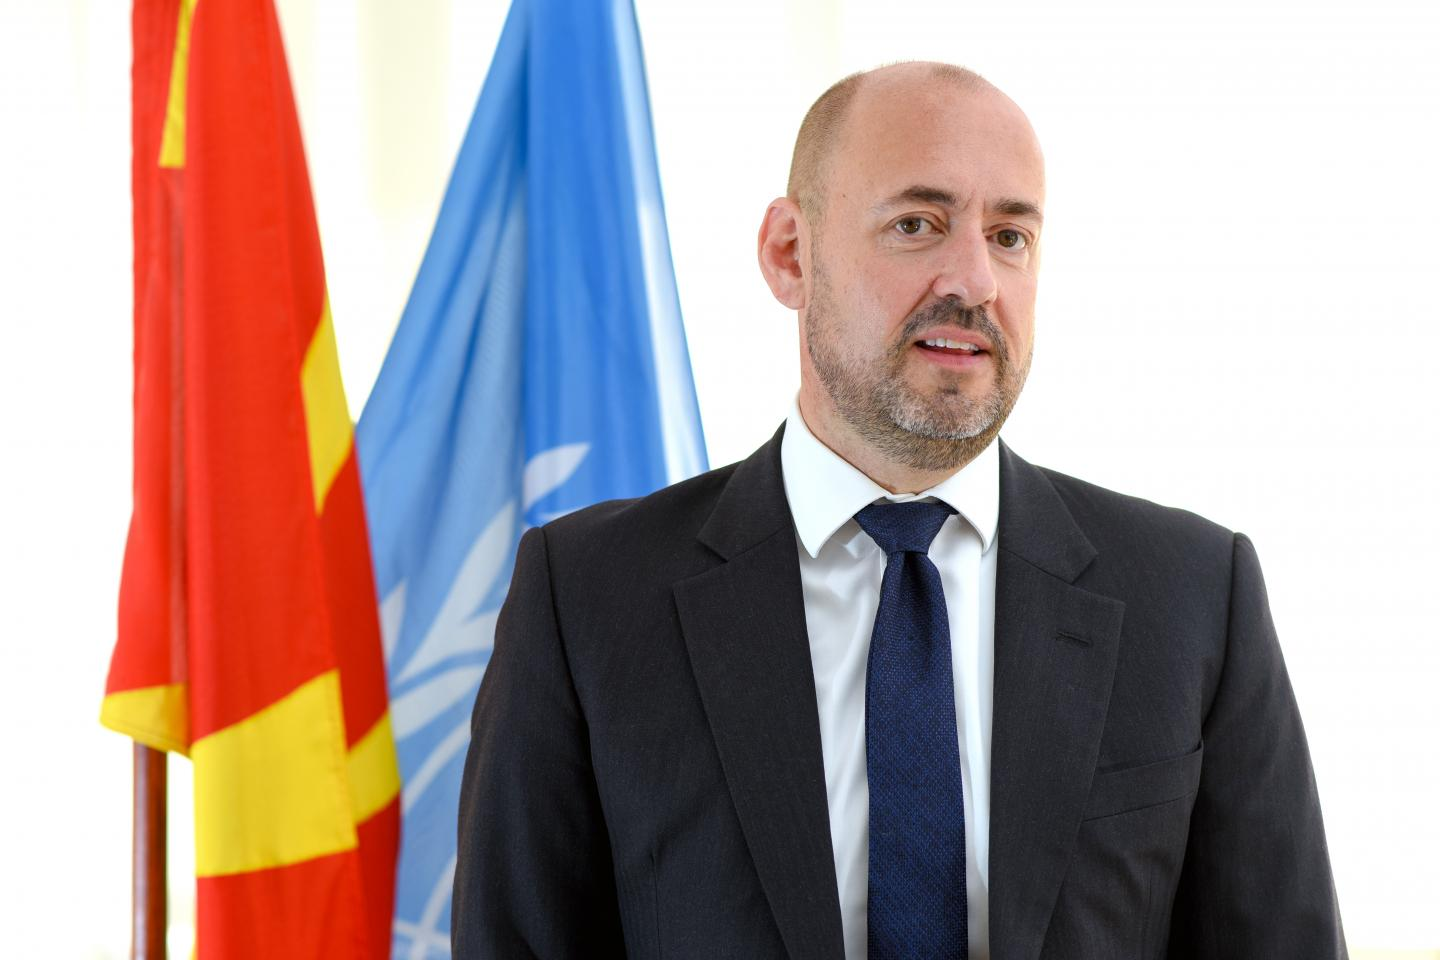 Photo of Benjamin Perks, UNICEF Representative